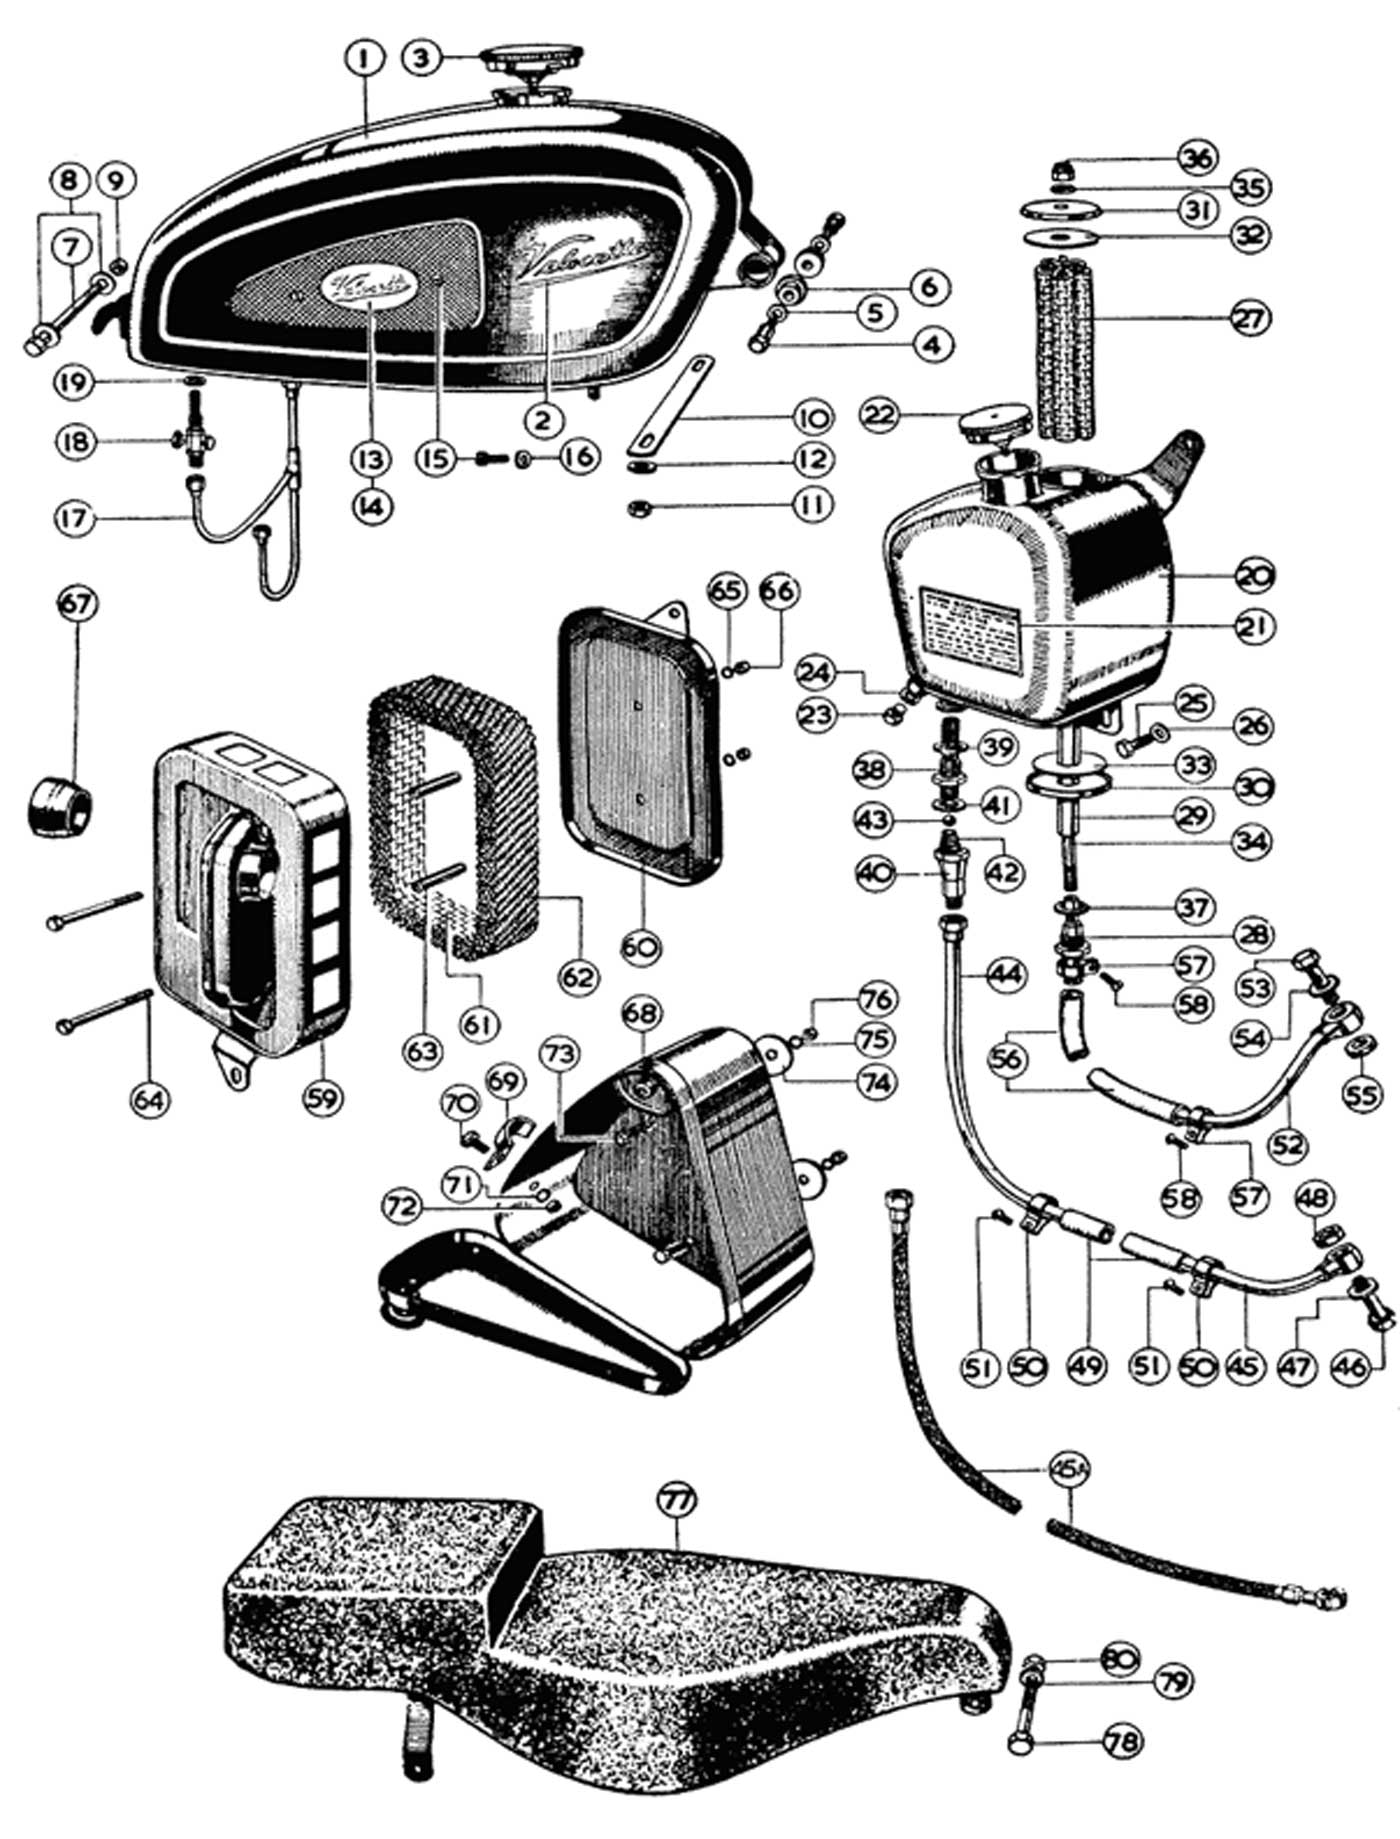 Velocette Le Wiring Diagram